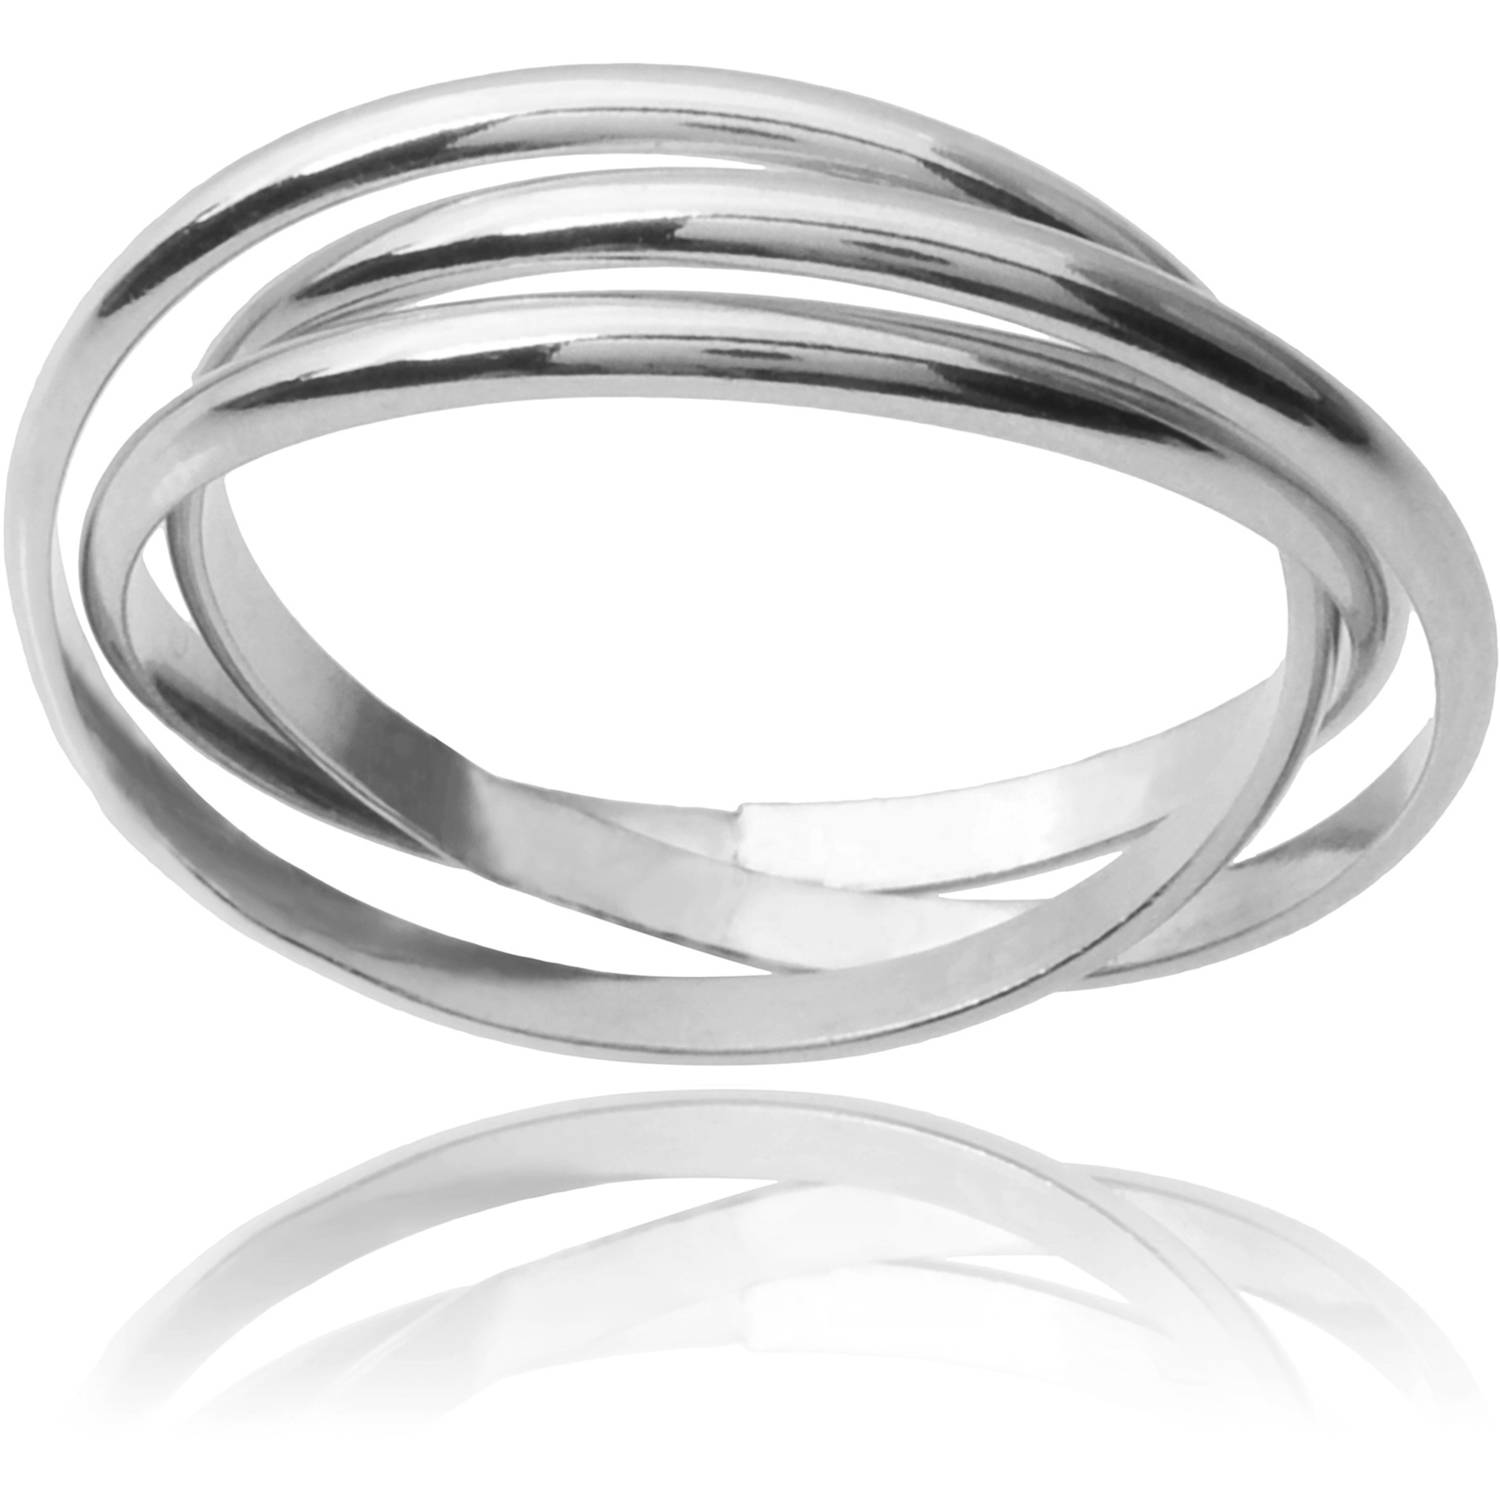 Brinley Co. Women's Sterling Silver 3-Band Rolo Fashion Ring